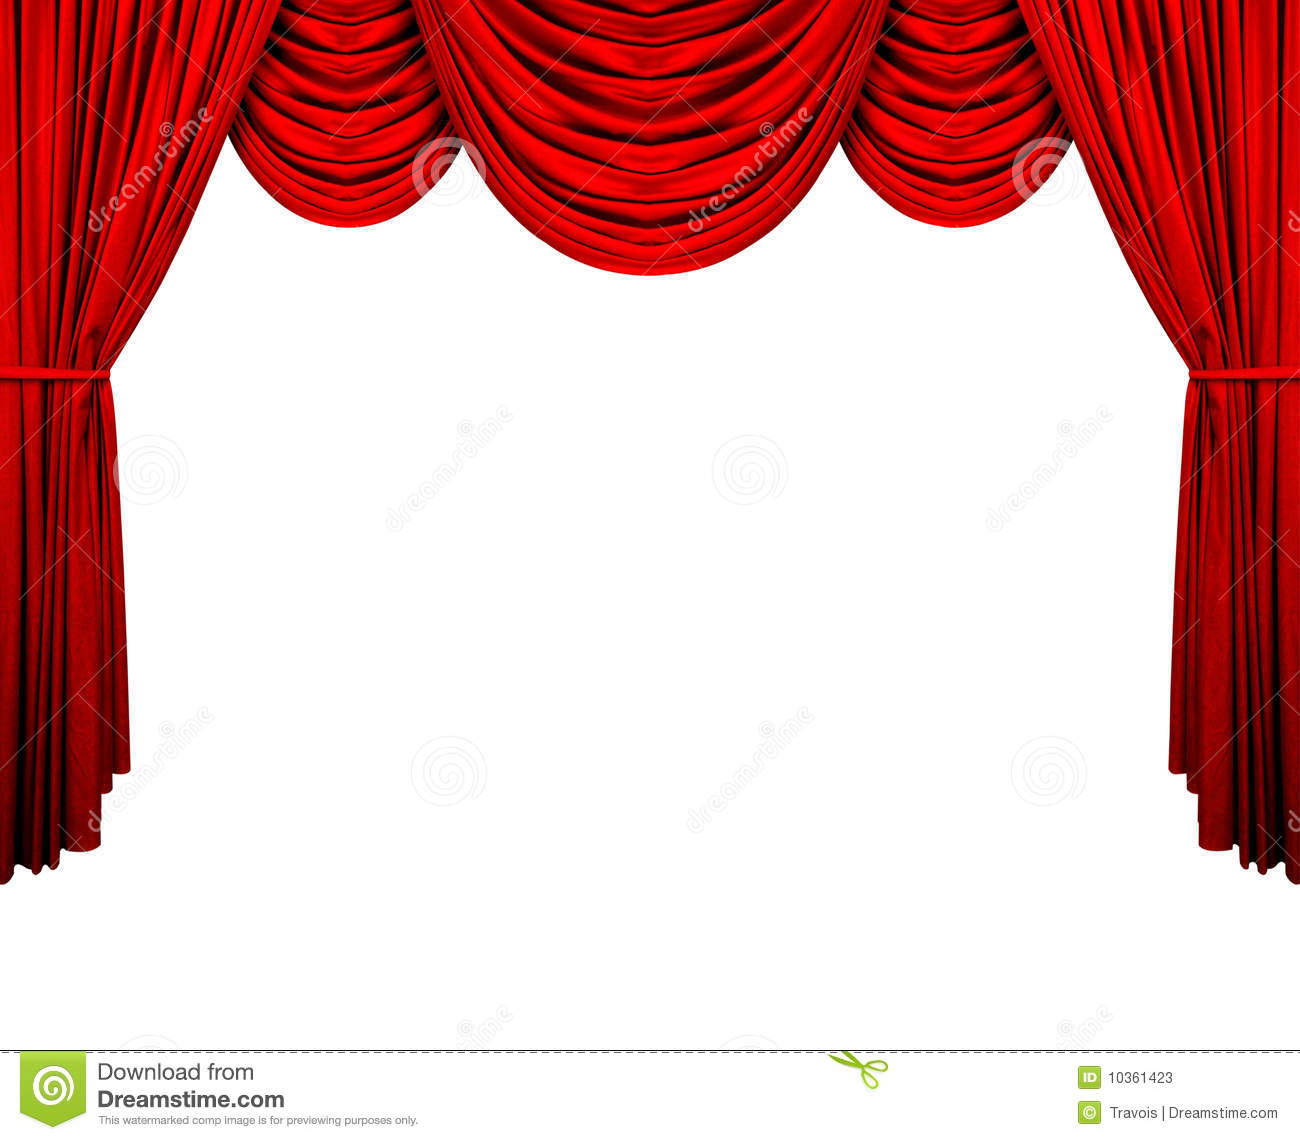 Stage curtains cli - Stage Curtain Clipart Www Imgkid Com The Image Kid Has It